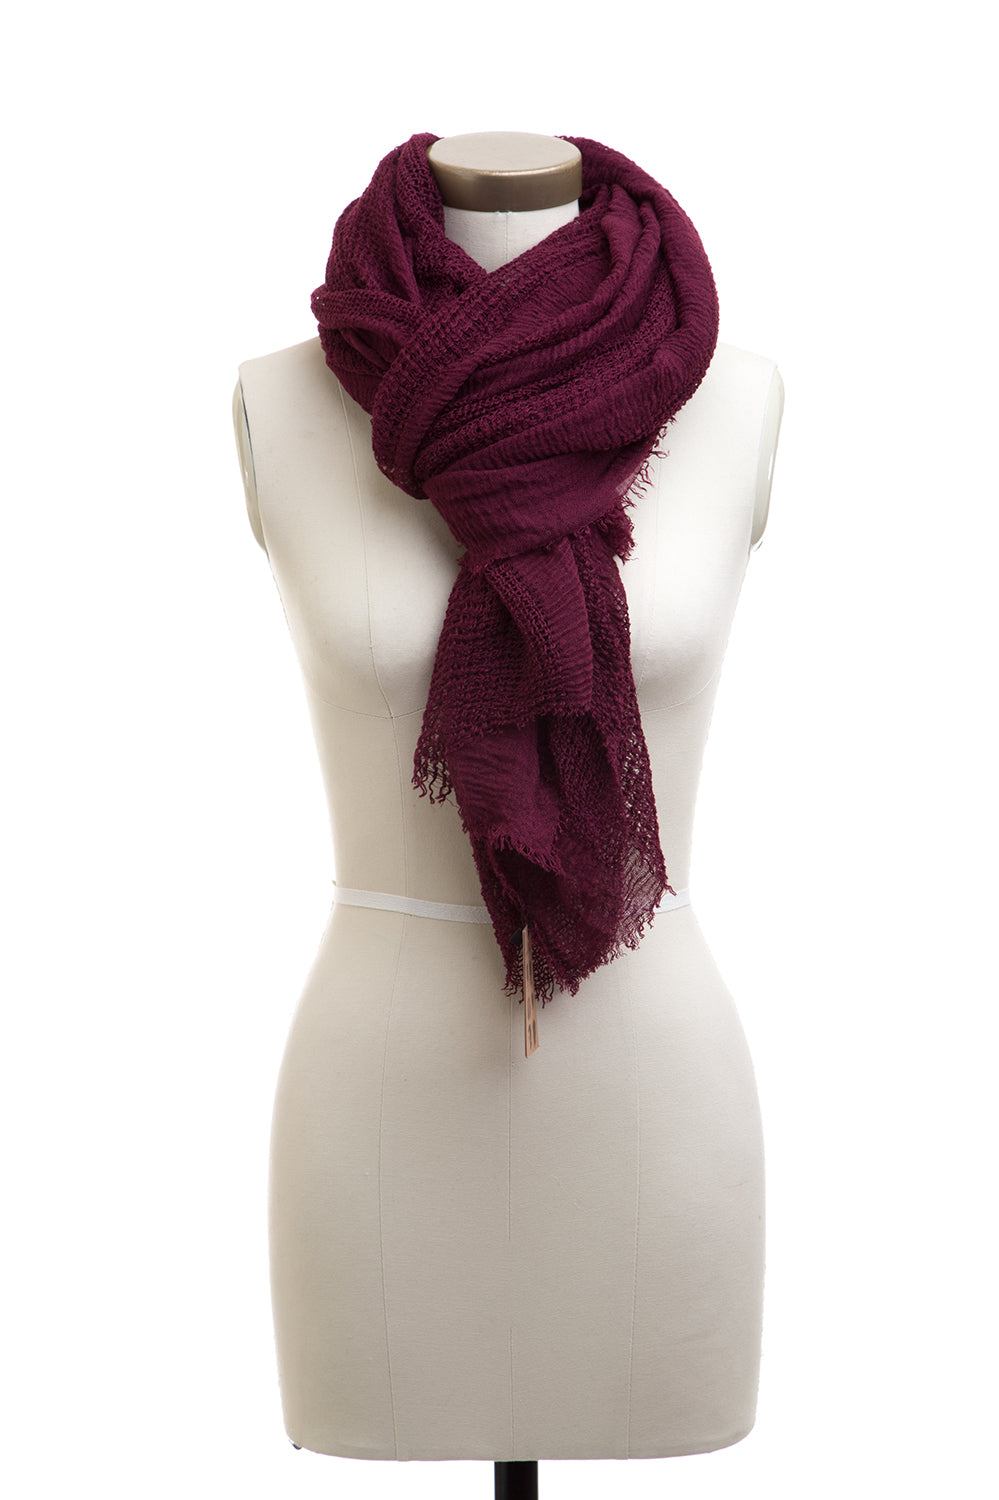 Type 3 By The Hearth Scarf in Burgundy